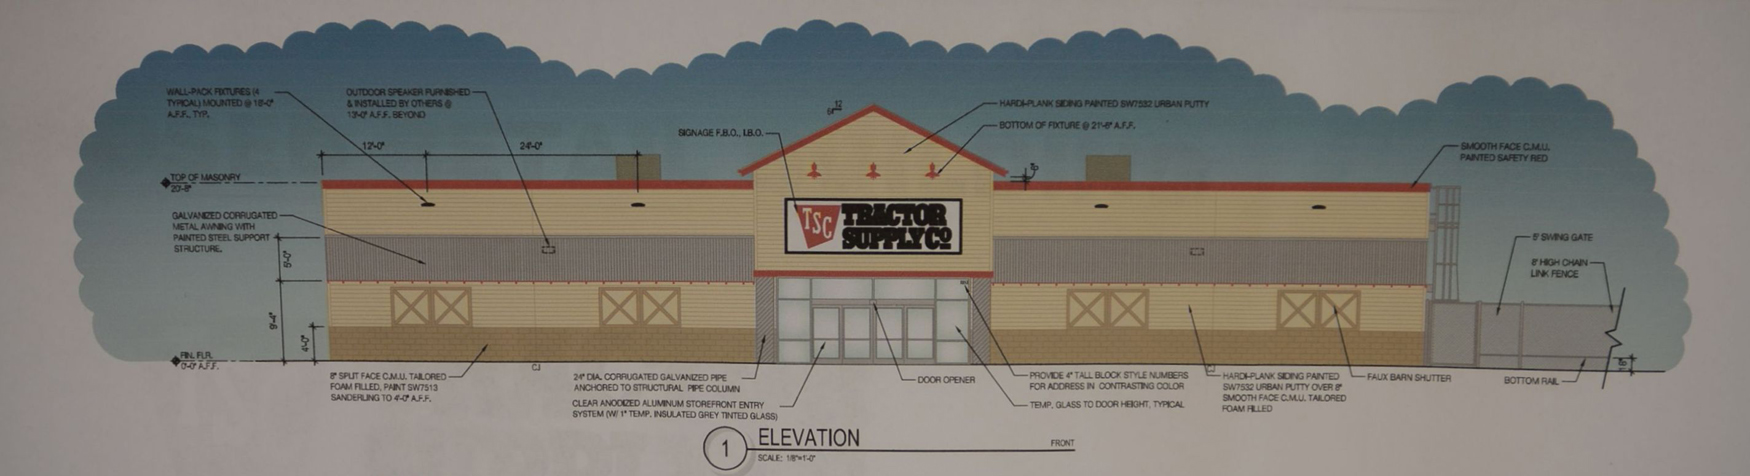 hight resolution of planning zoning commission member jim swift urged that aesthetic changes be made to the proposed tractor supply company building to have it satisfy the